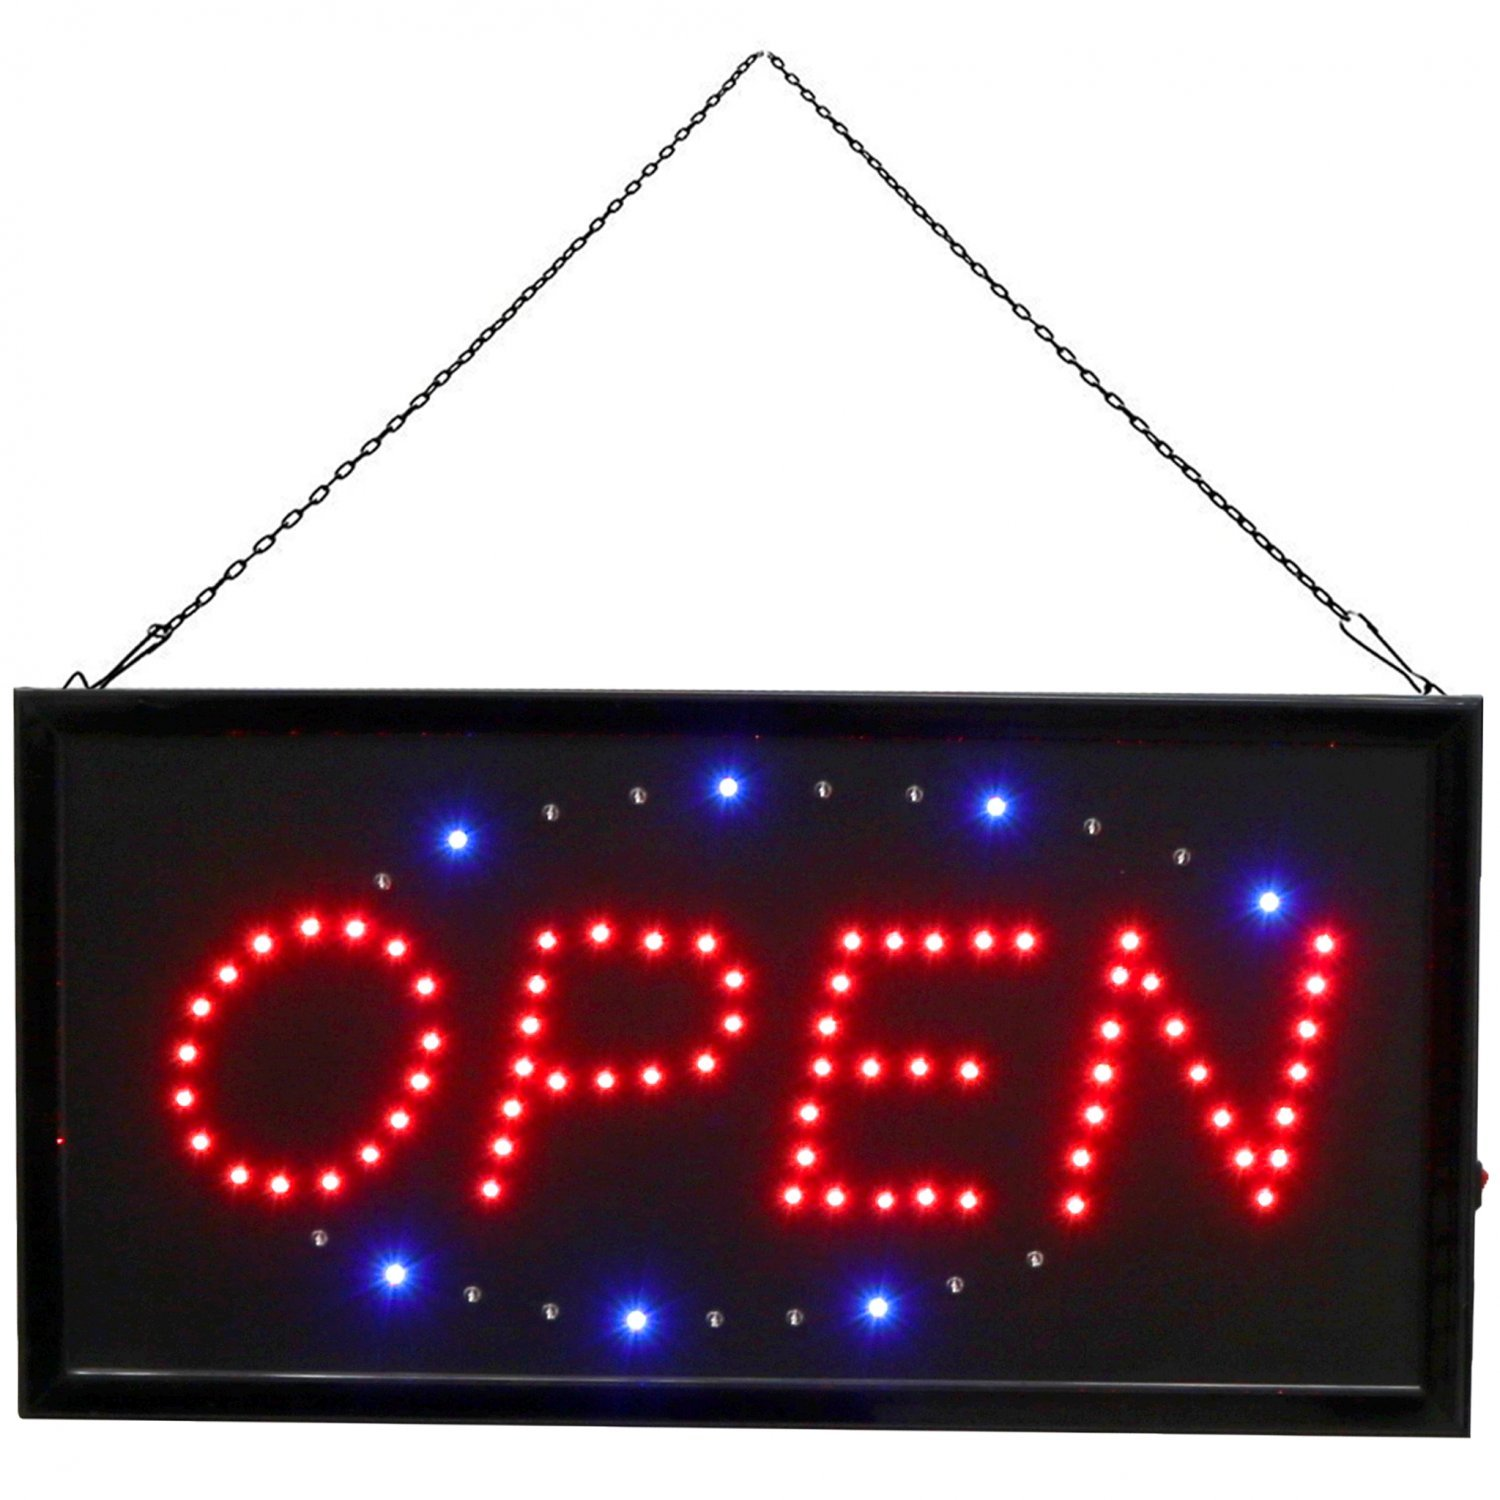 flashing led open sign shop window display hanging light oypla stocking the very. Black Bedroom Furniture Sets. Home Design Ideas